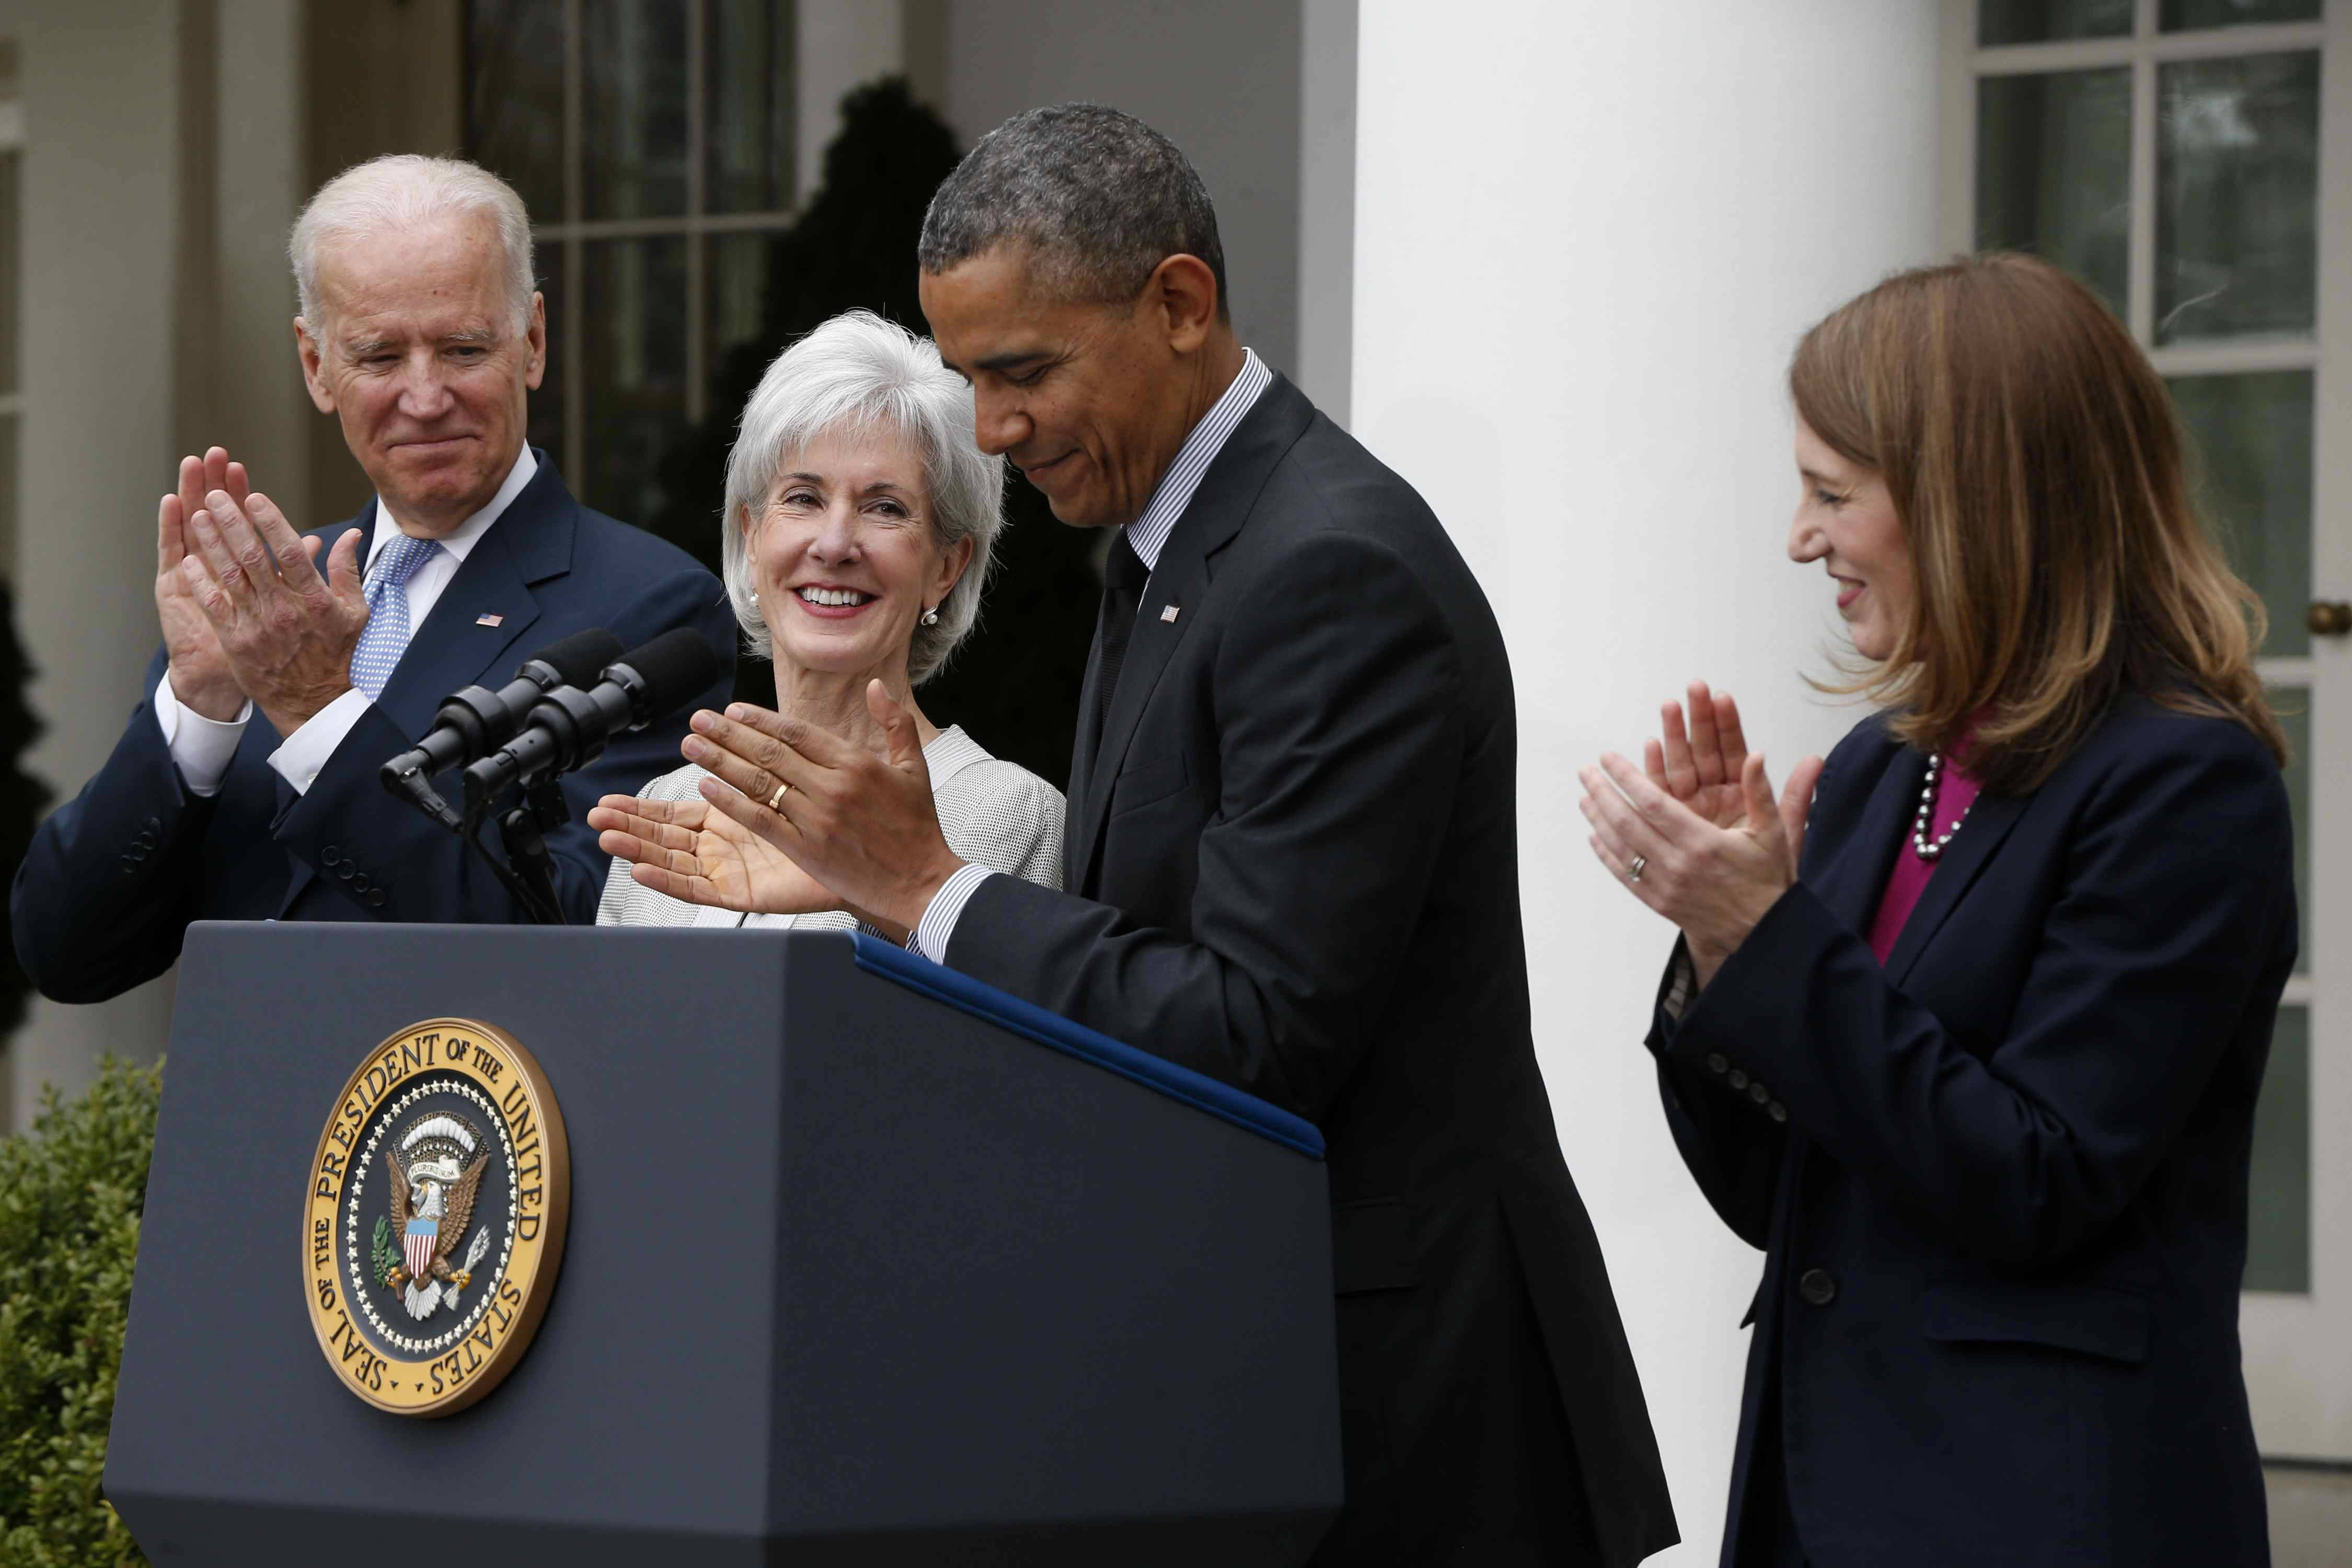 President Barack Obama and Vice President Joe Biden stand with outgoing Health and Human Services Secretary Kathleen Sebelius, second from left, and his nominee to be her replacement, Budget Director Sylvia Mathews Burwell, Friday, April 11, 2014, in the Rose Garden of the White House in Washington.